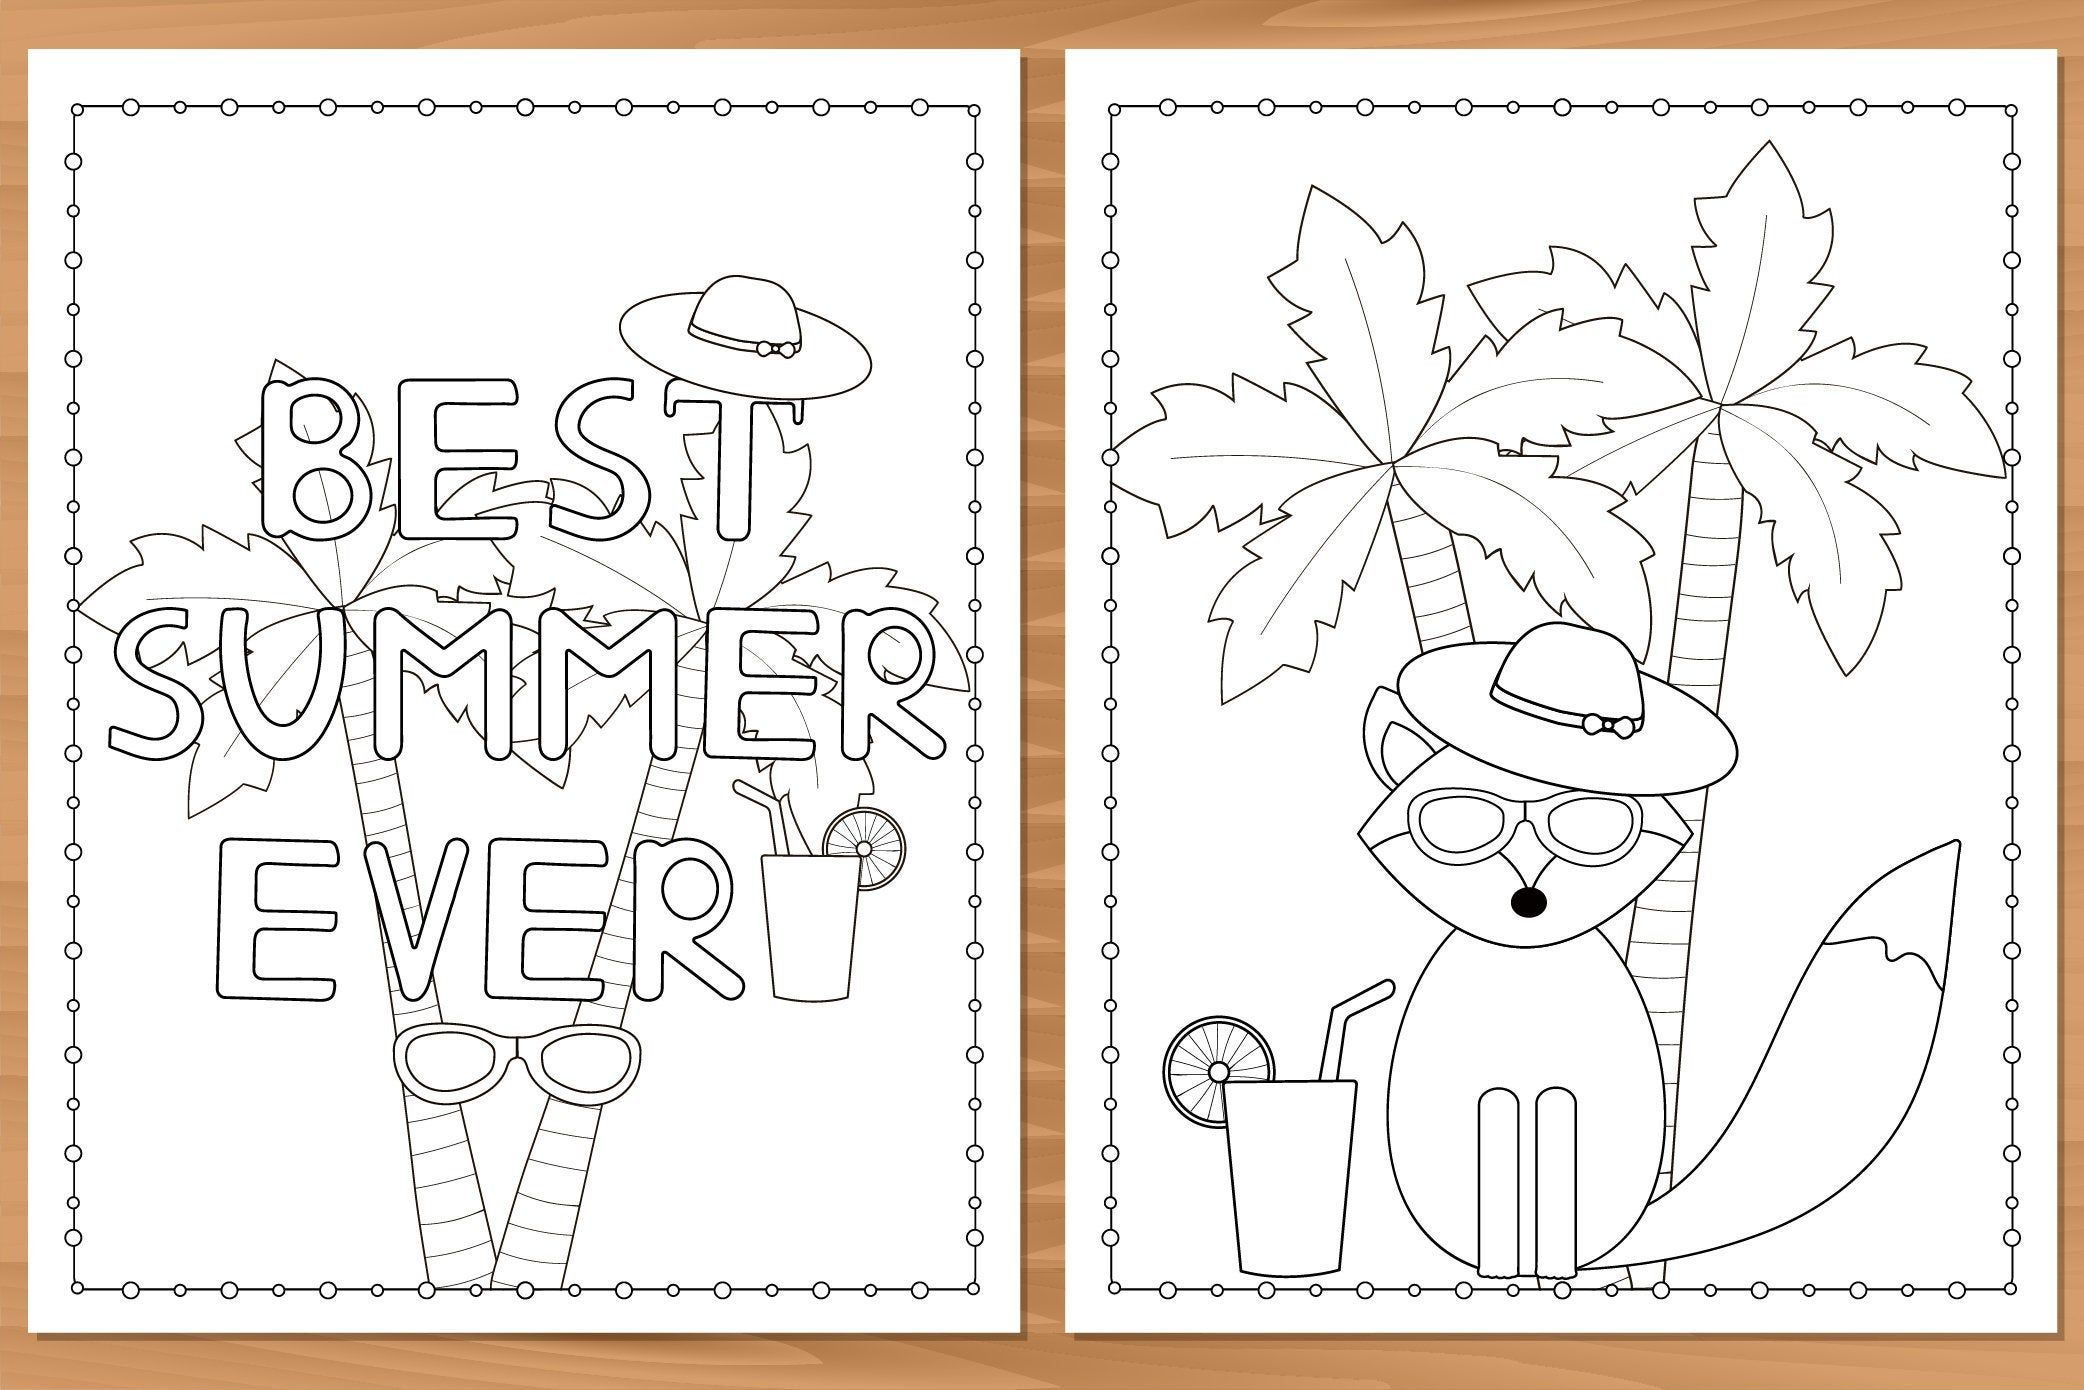 Summer 11 Printable Coloring Pages Instant Download In 2020 Coloring Pages Printable Coloring Pages Printable Coloring